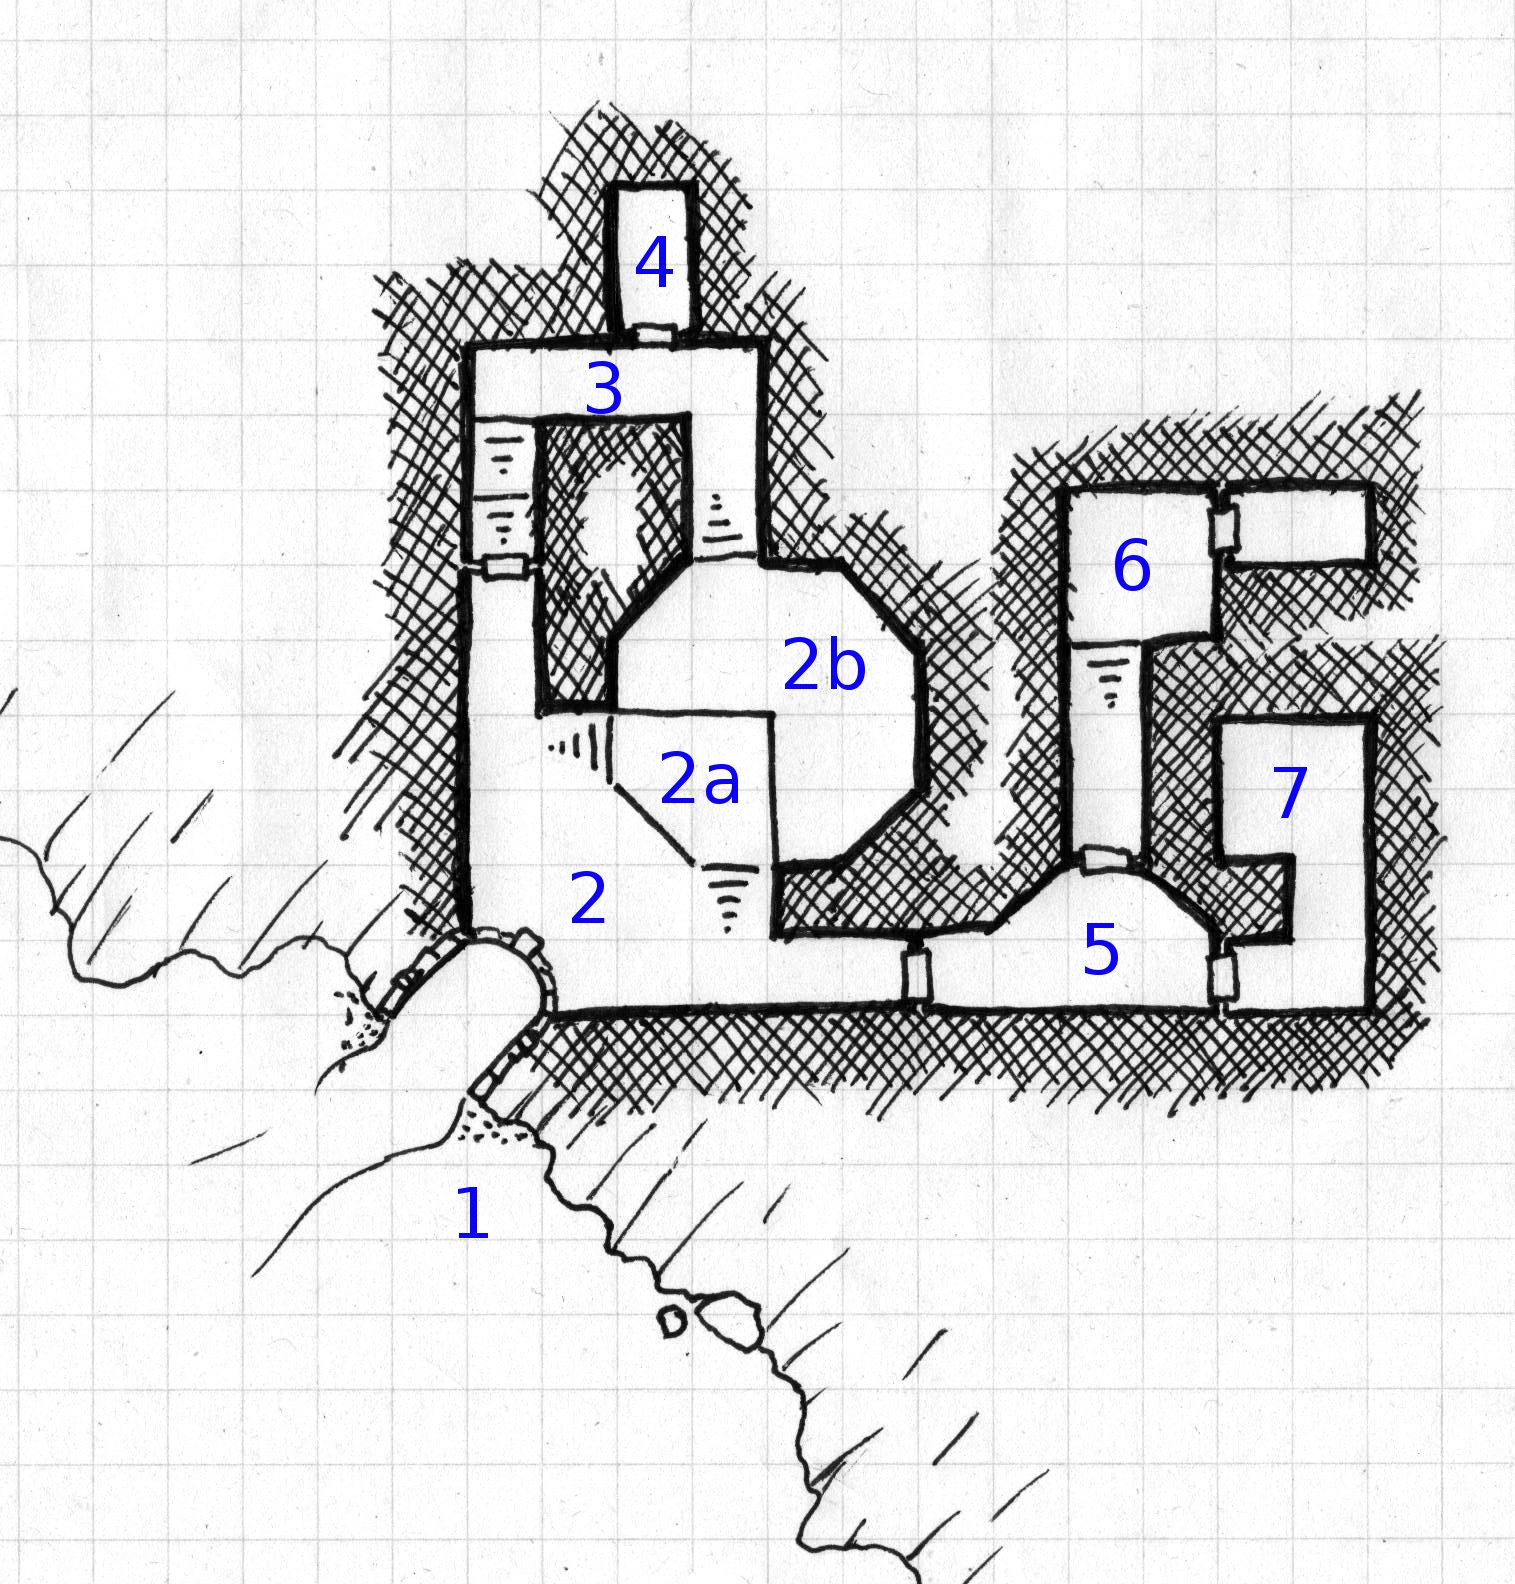 tomb-map-1